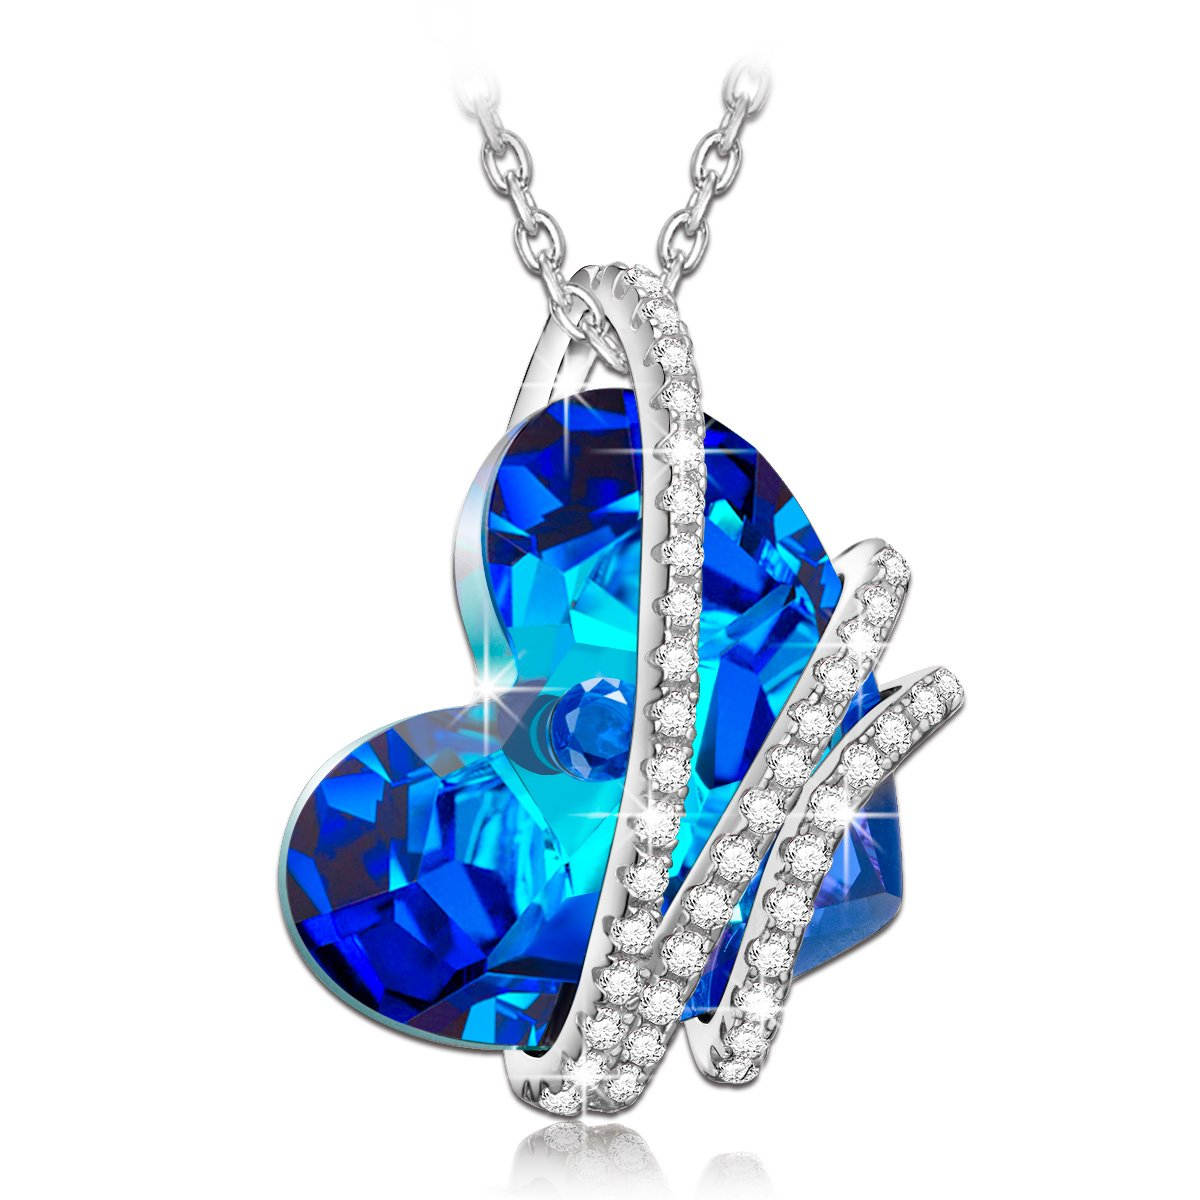 NINAQUEEN Silver Necklaces for Women Pendant Jewelry with Crystals from Swarovski Necklace Birthday Anniversary Back to School for Her Daughter Wife Girlfriend Niece Sister Teen Girls